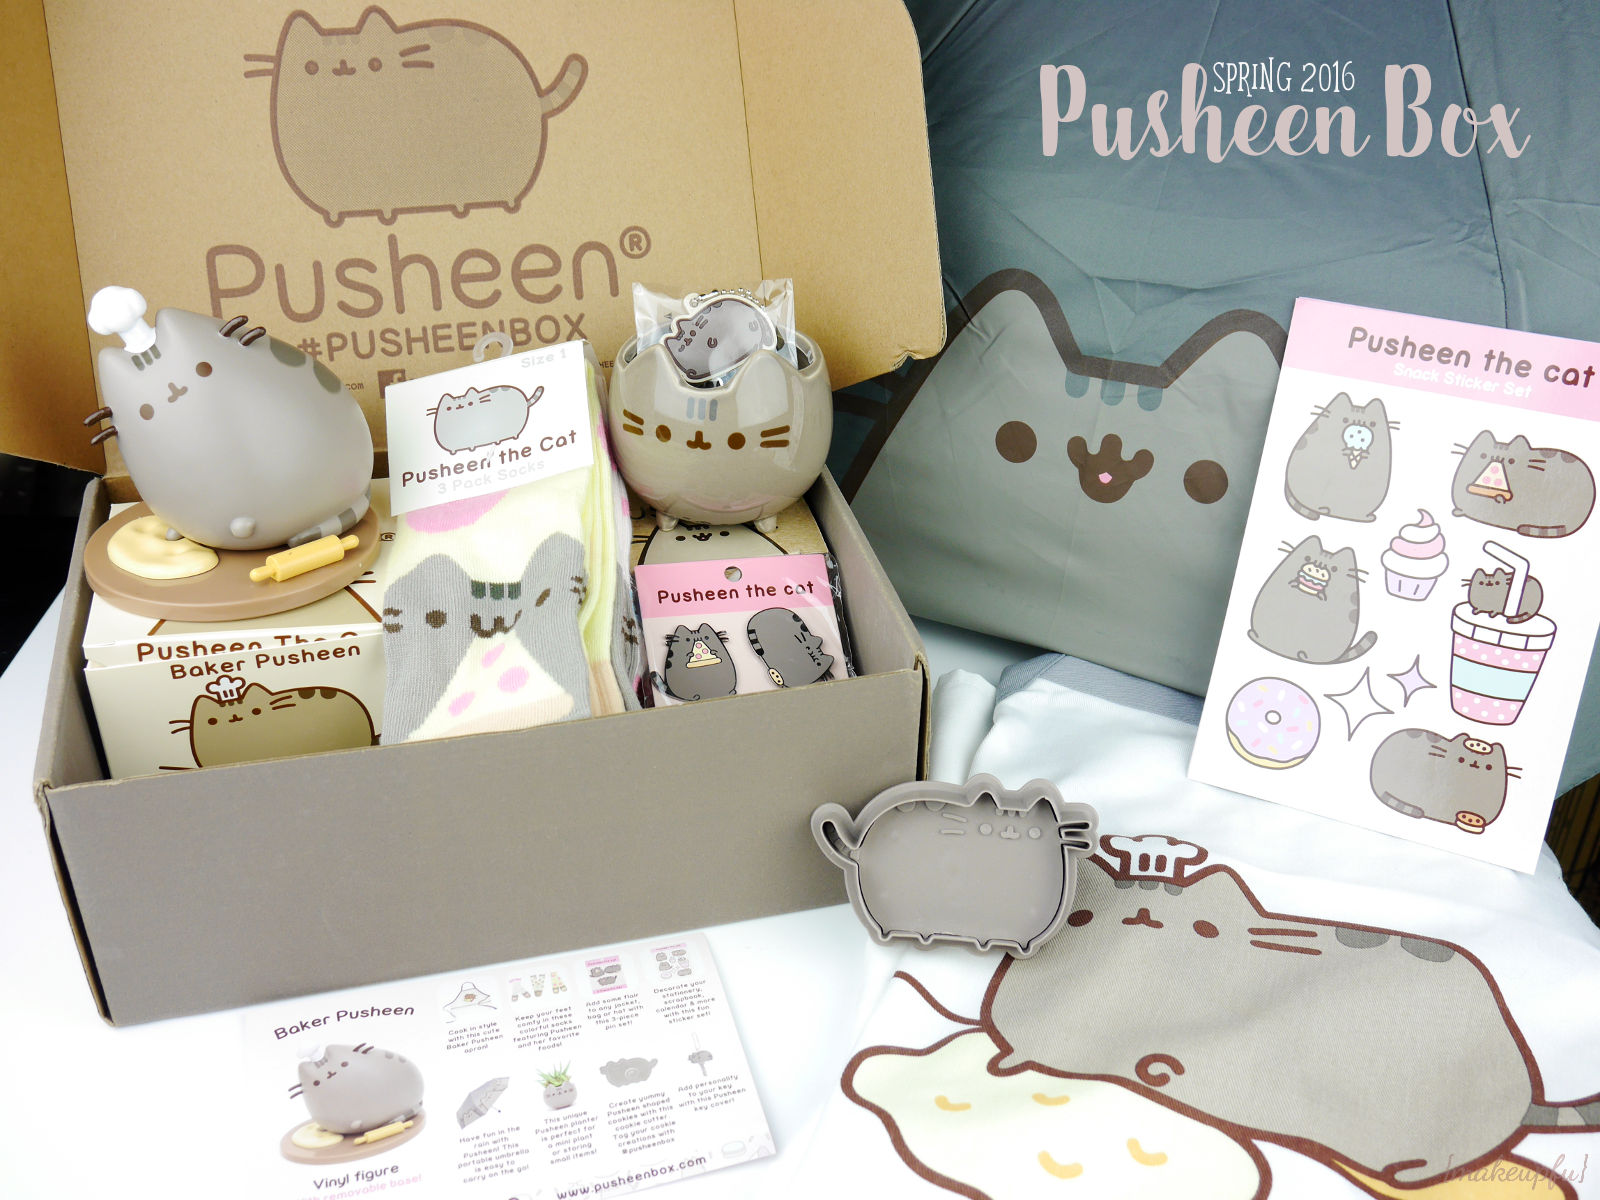 Kawaii Fall Wallpaper 10 Subscription Boxes You Need In Your Life Her Campus